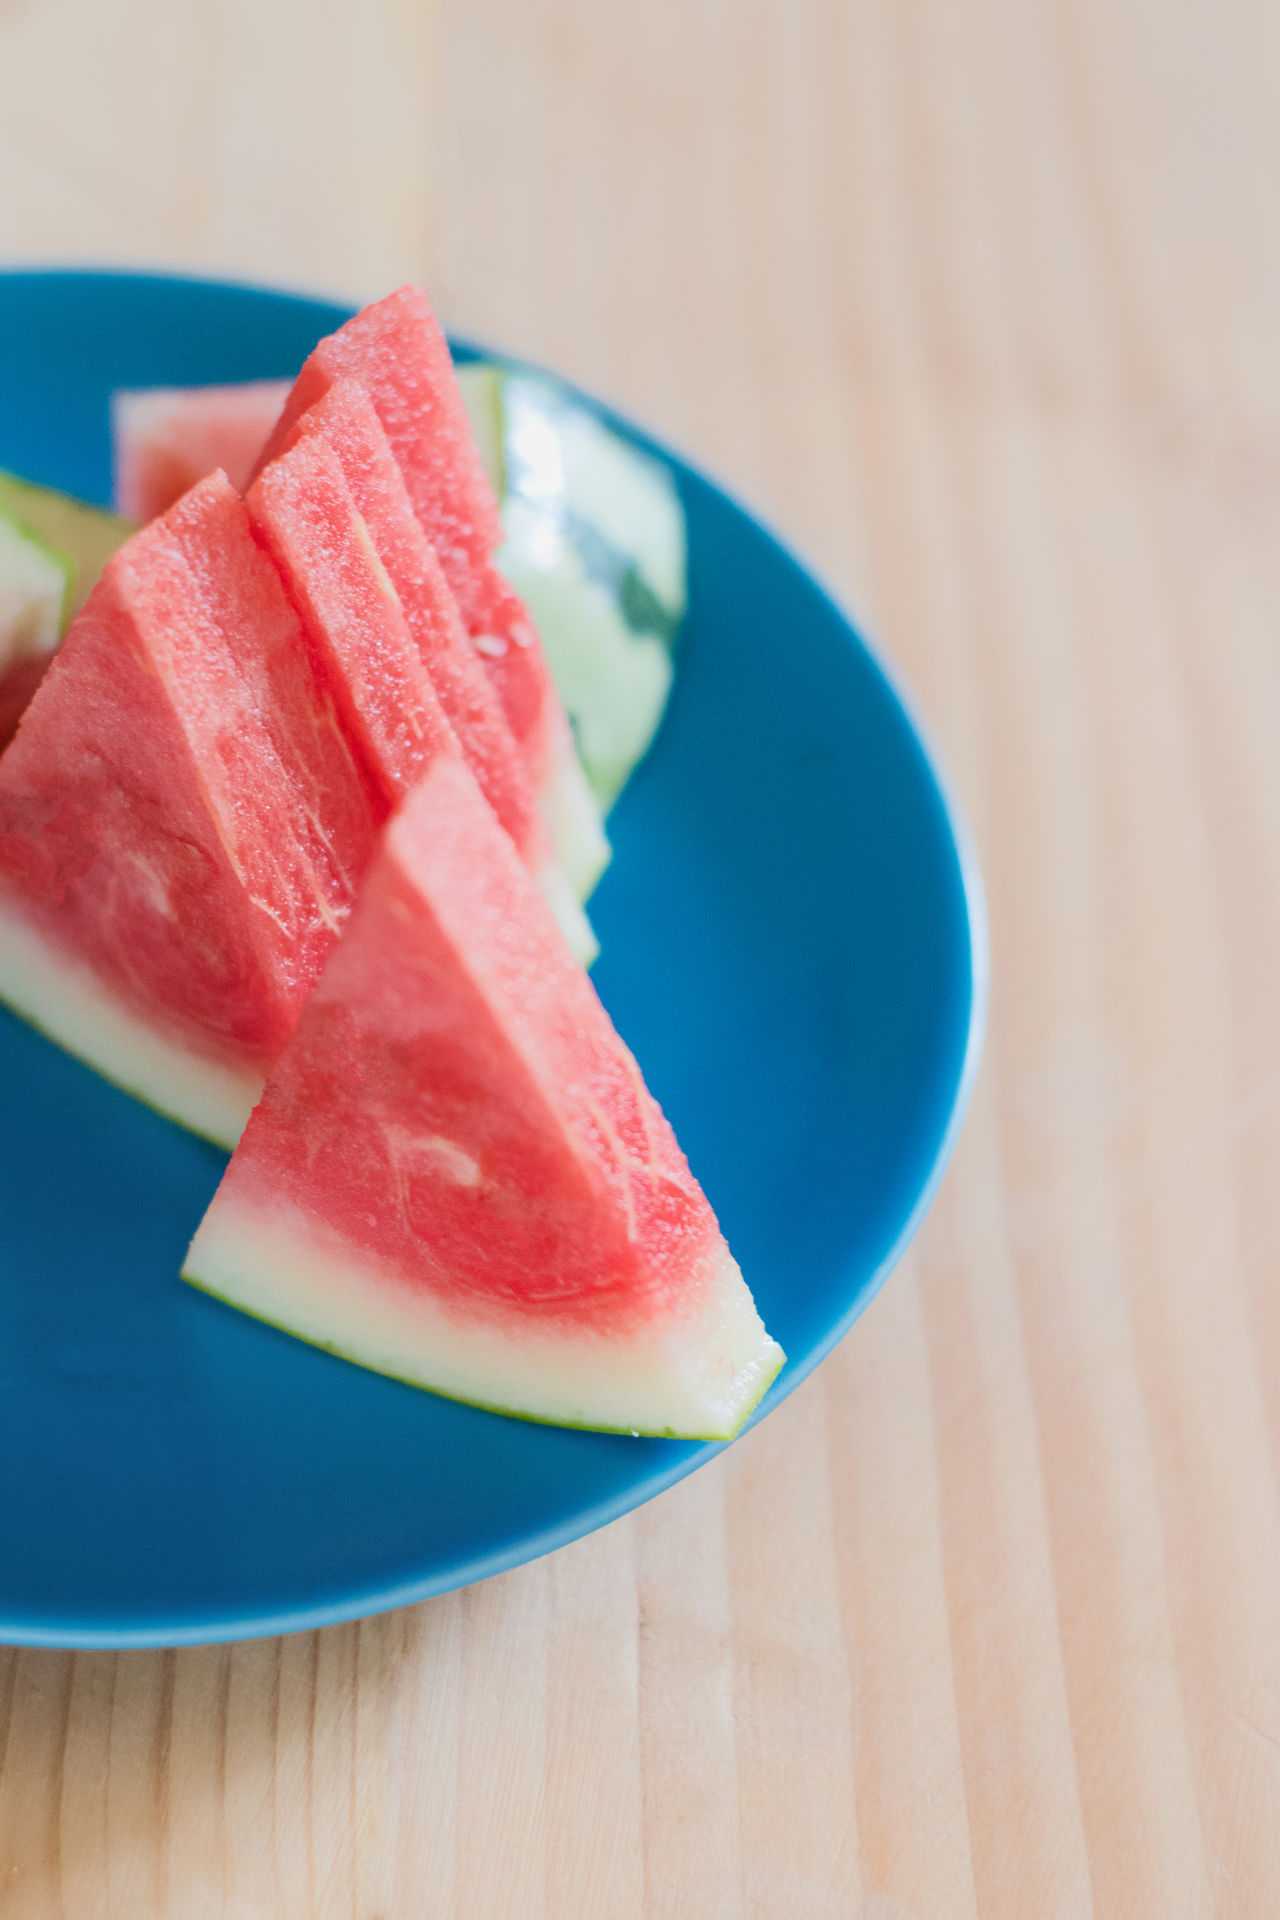 Water melon the taste for summer Focus On Foreground Food Freshness Fruit Healthy Food Indulgence Multi Colored No People Selective Focus Still Life Summer Food Temptation Vivid Water Melon